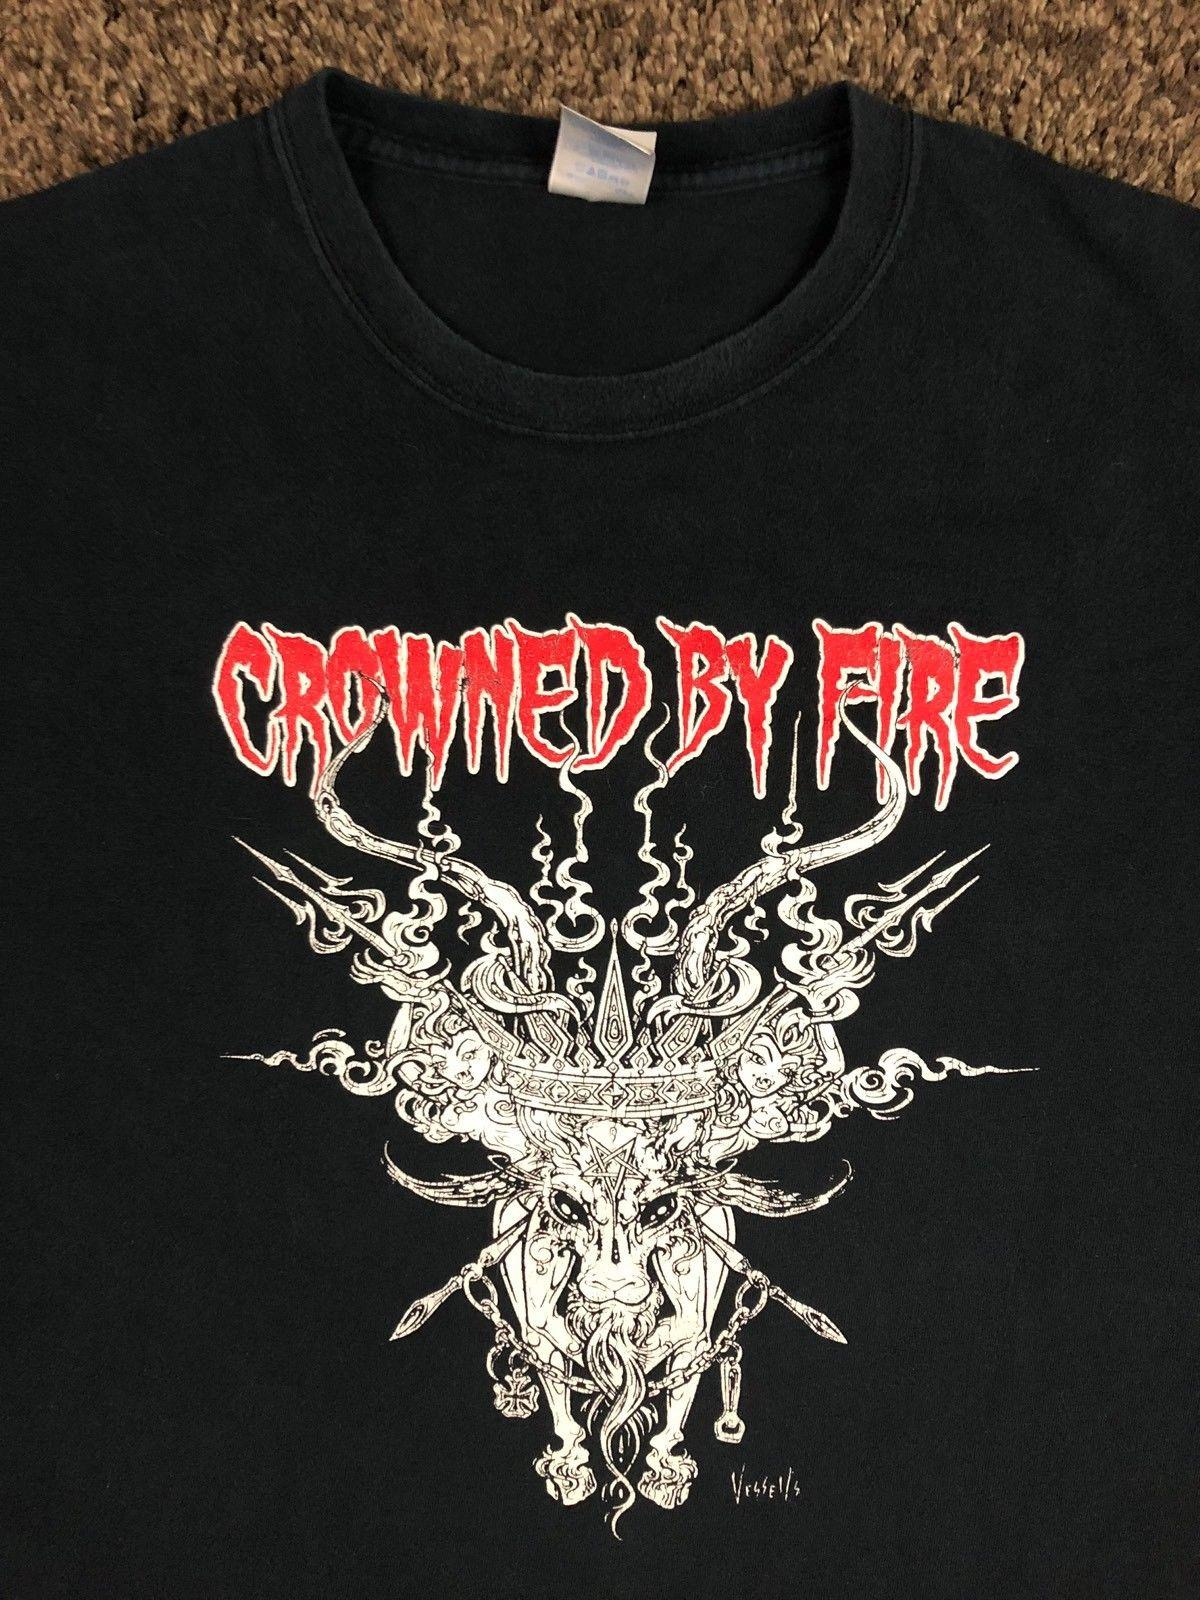 Crowned By Fire CFB Goat Los Angeles Doom Metal Grunge T Shirt 3XL Concert  Tour High Quality Cotton Hip Hop Short Sleeve